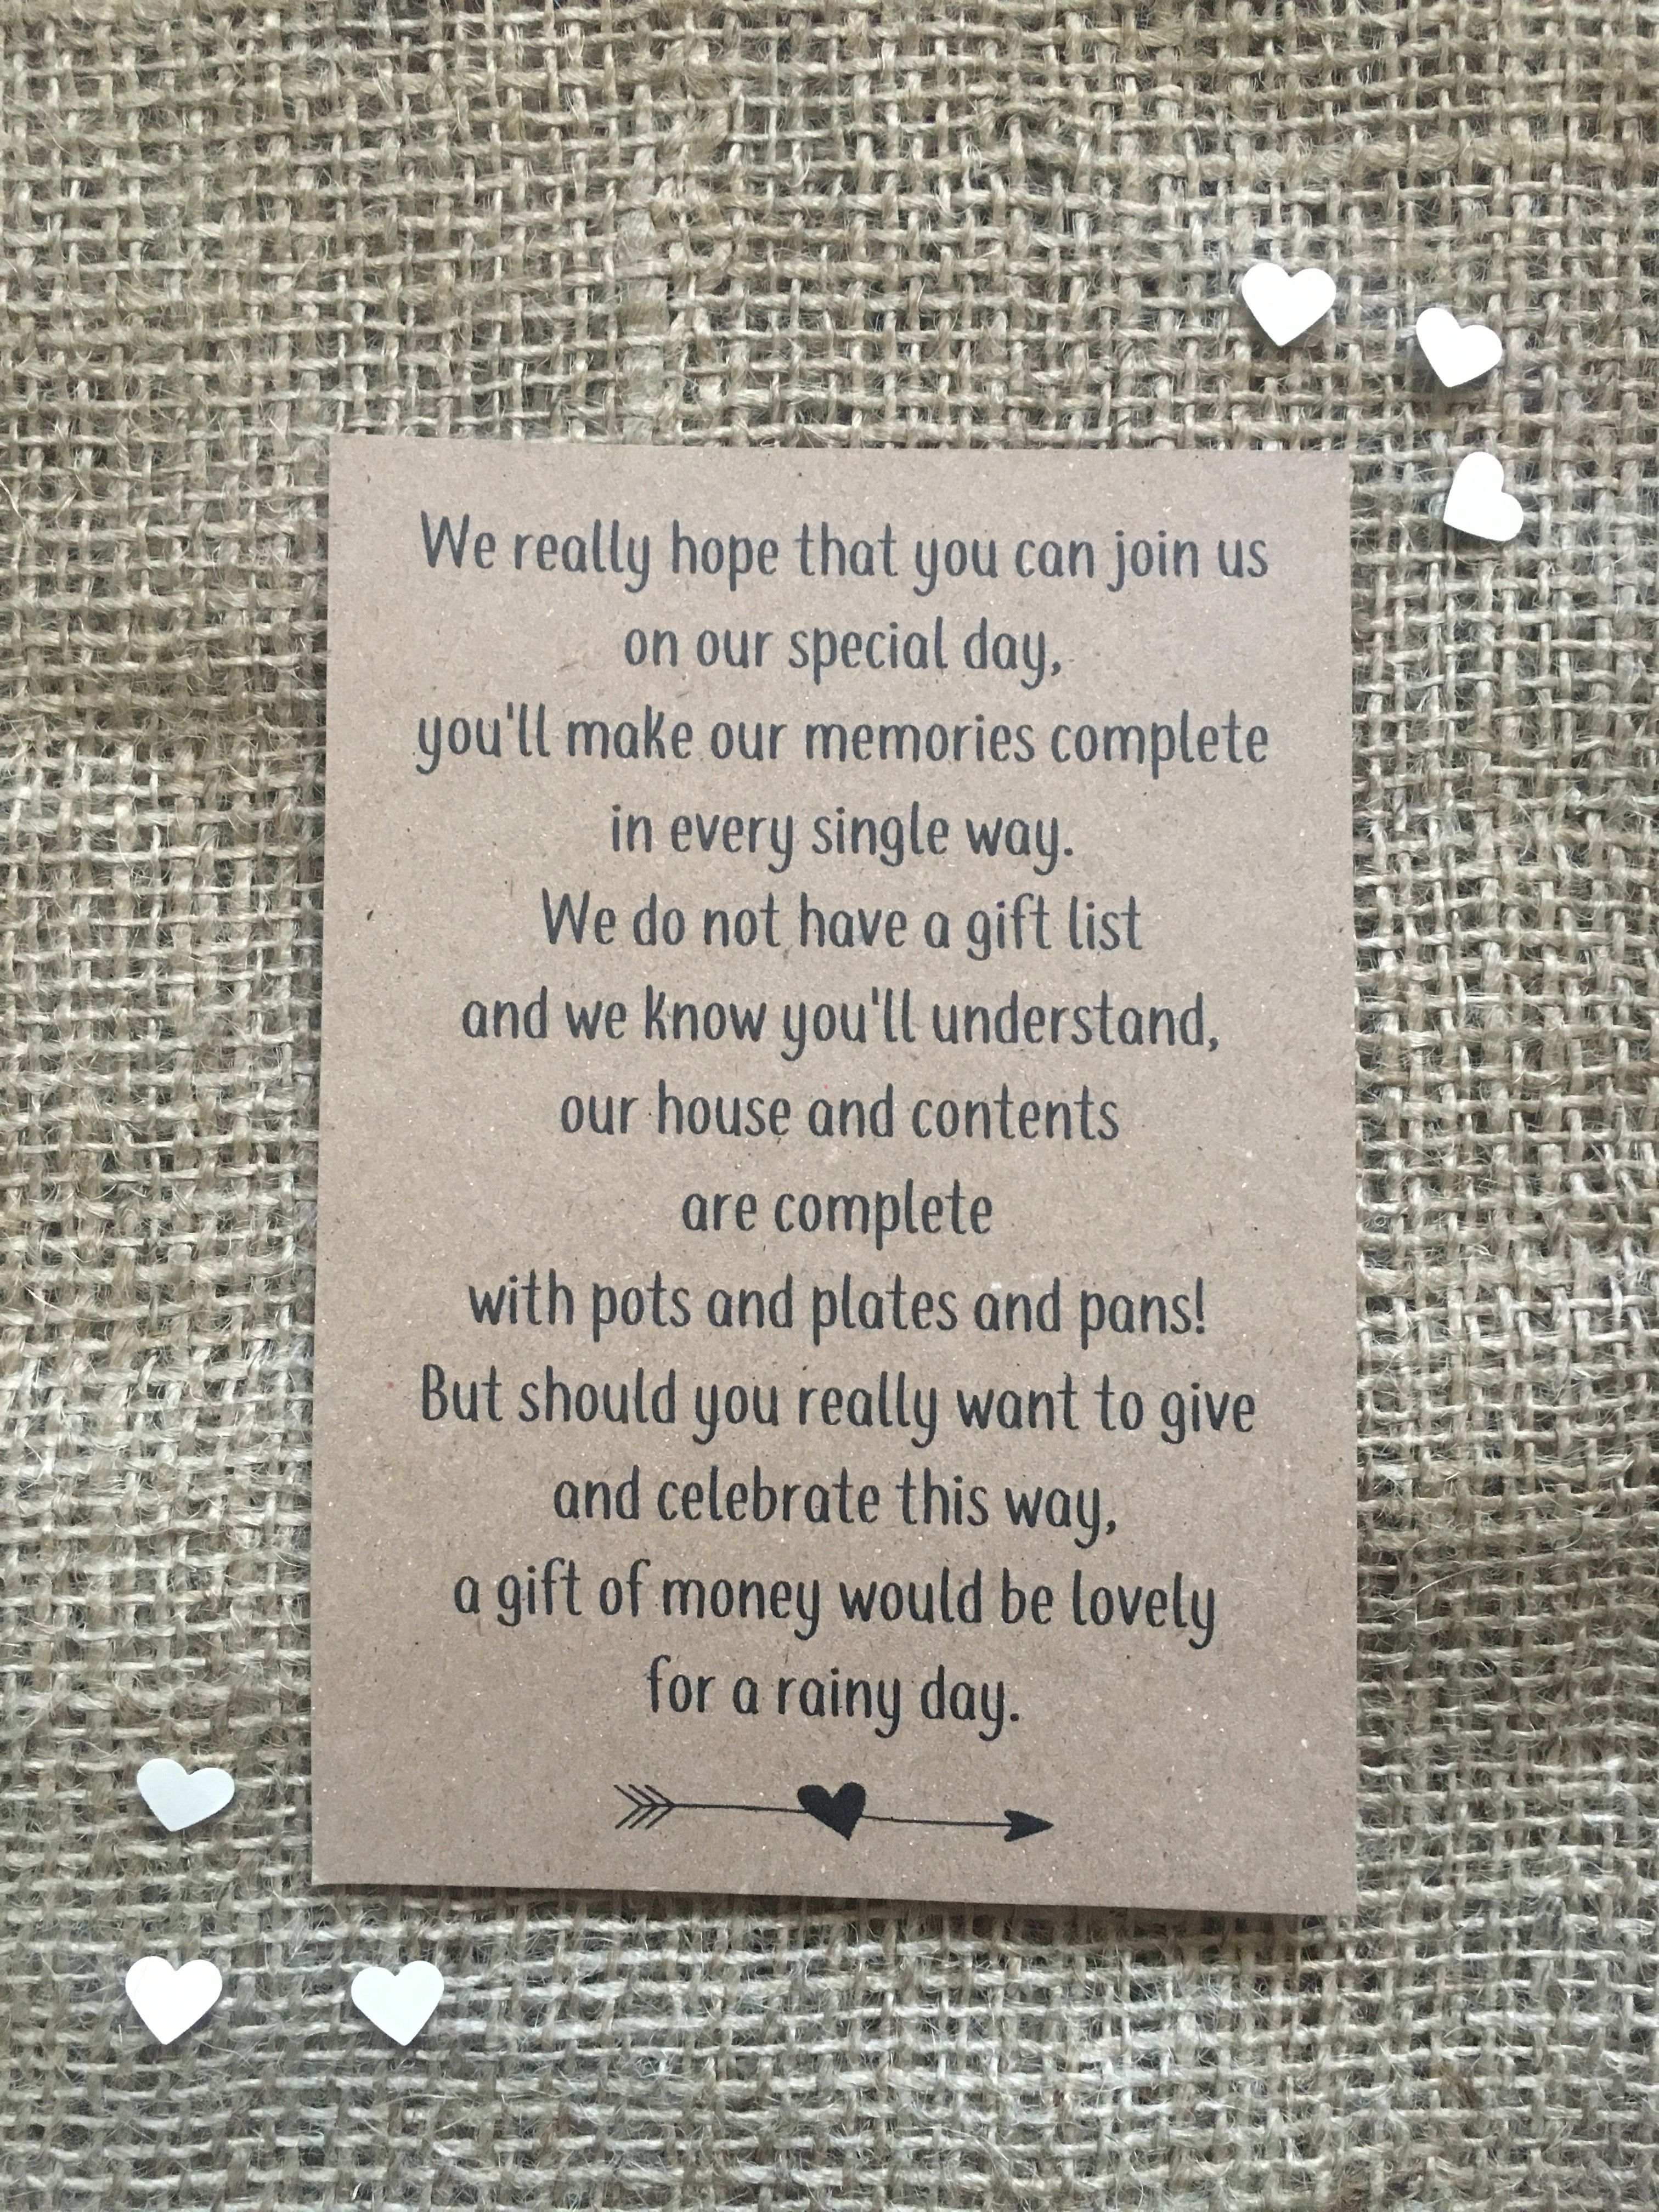 Fun Little Wedding Poem Politely Requesting Cash Gifts Ideal For